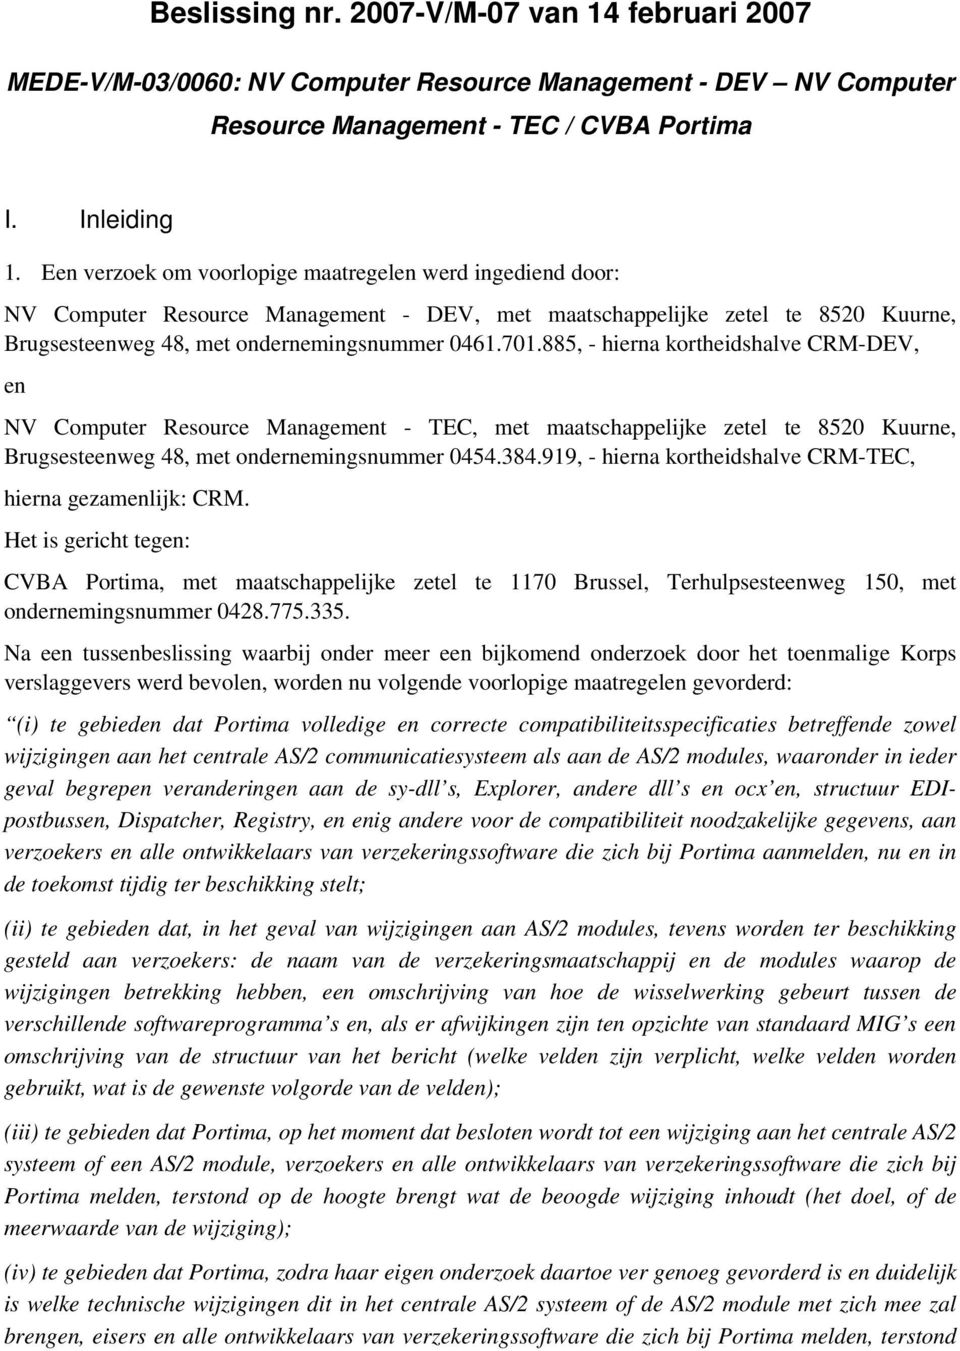 885, - hierna kortheidshalve CRM-DEV, en NV Computer Resource Management - TEC, met maatschappelijke zetel te 8520 Kuurne, Brugsesteenweg 48, met ondernemingsnummer 0454.384.